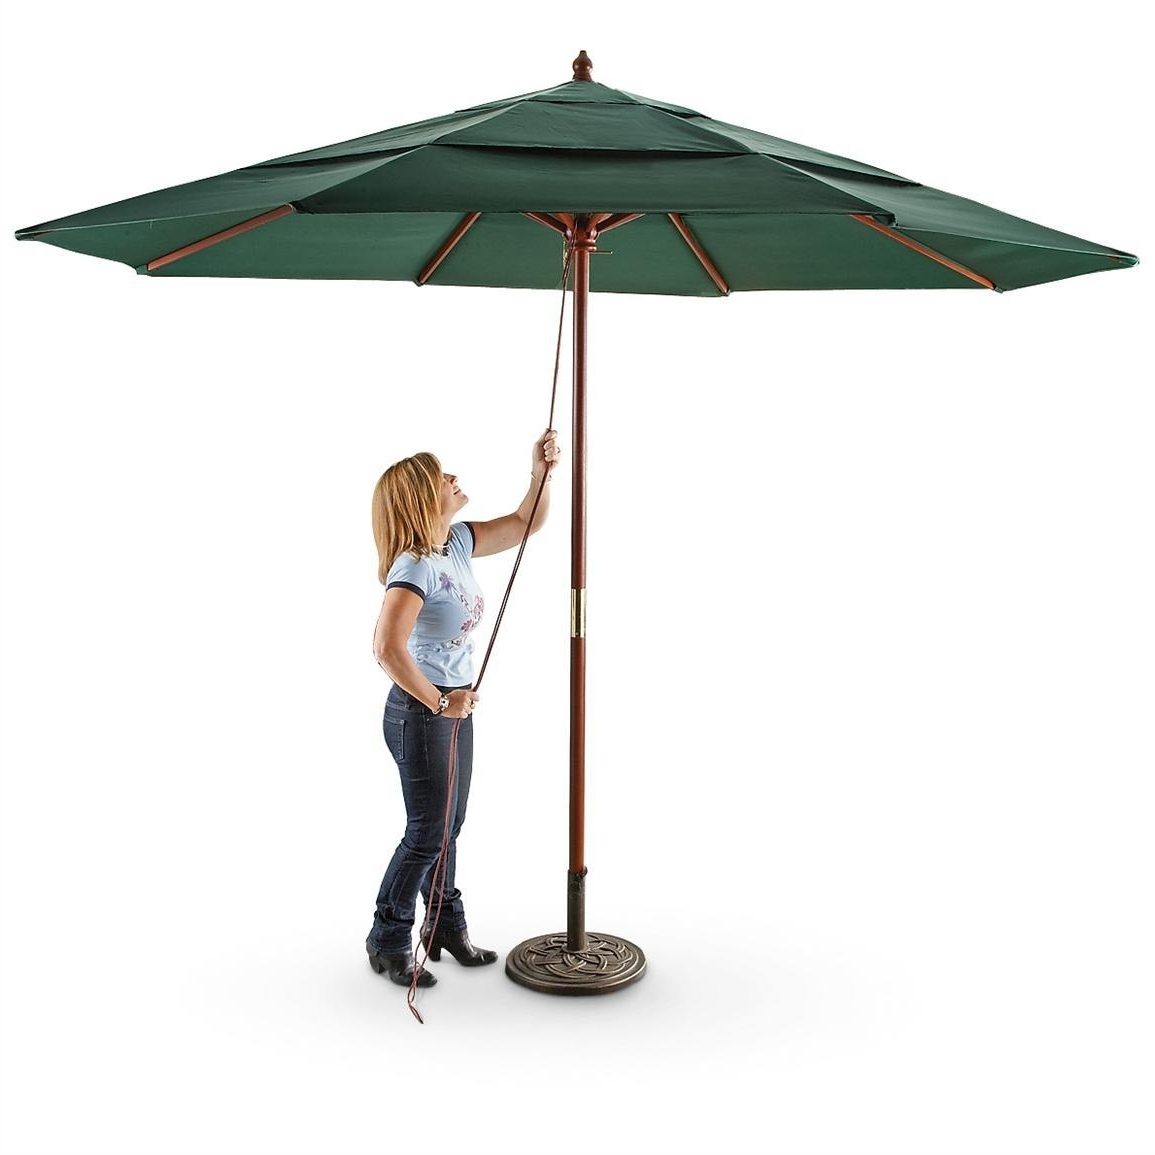 Most Recent Zspmed Of 11 Ft Patio Umbrella Pertaining To 11 Foot Patio Umbrellas (View 20 of 20)